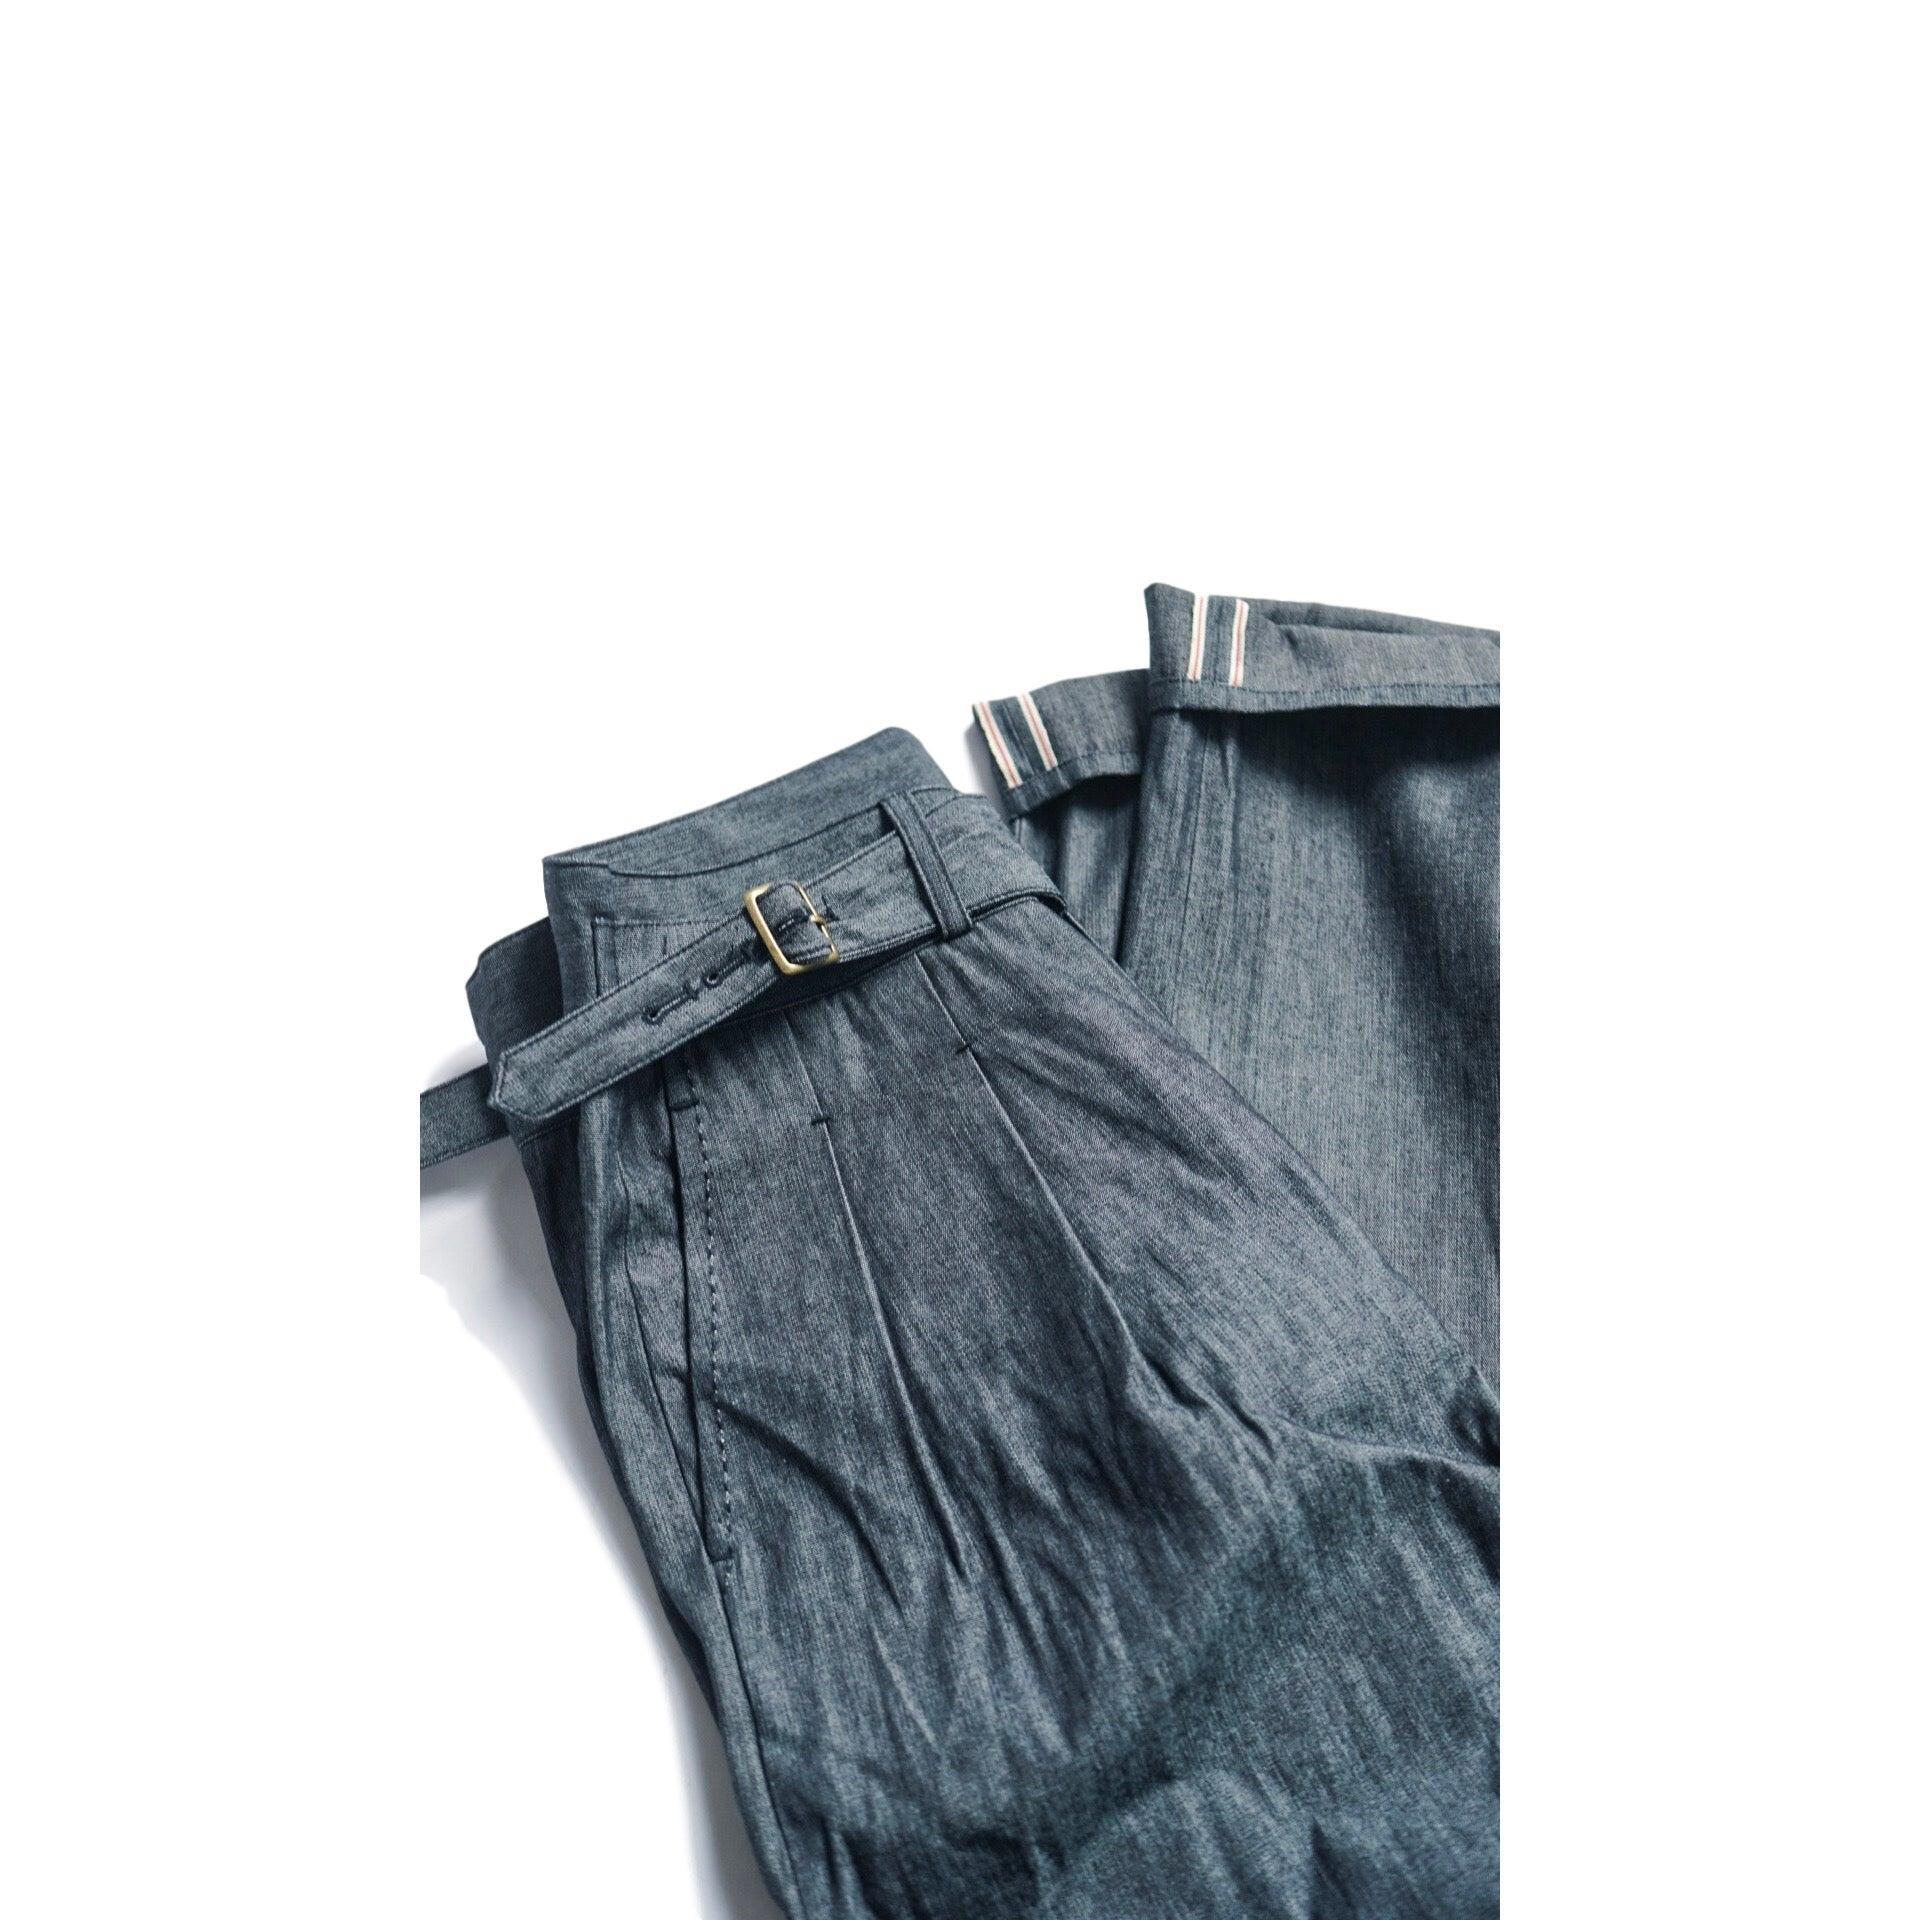 Natural Dyed Selvedge Japanese Denim Gurkha Trousers